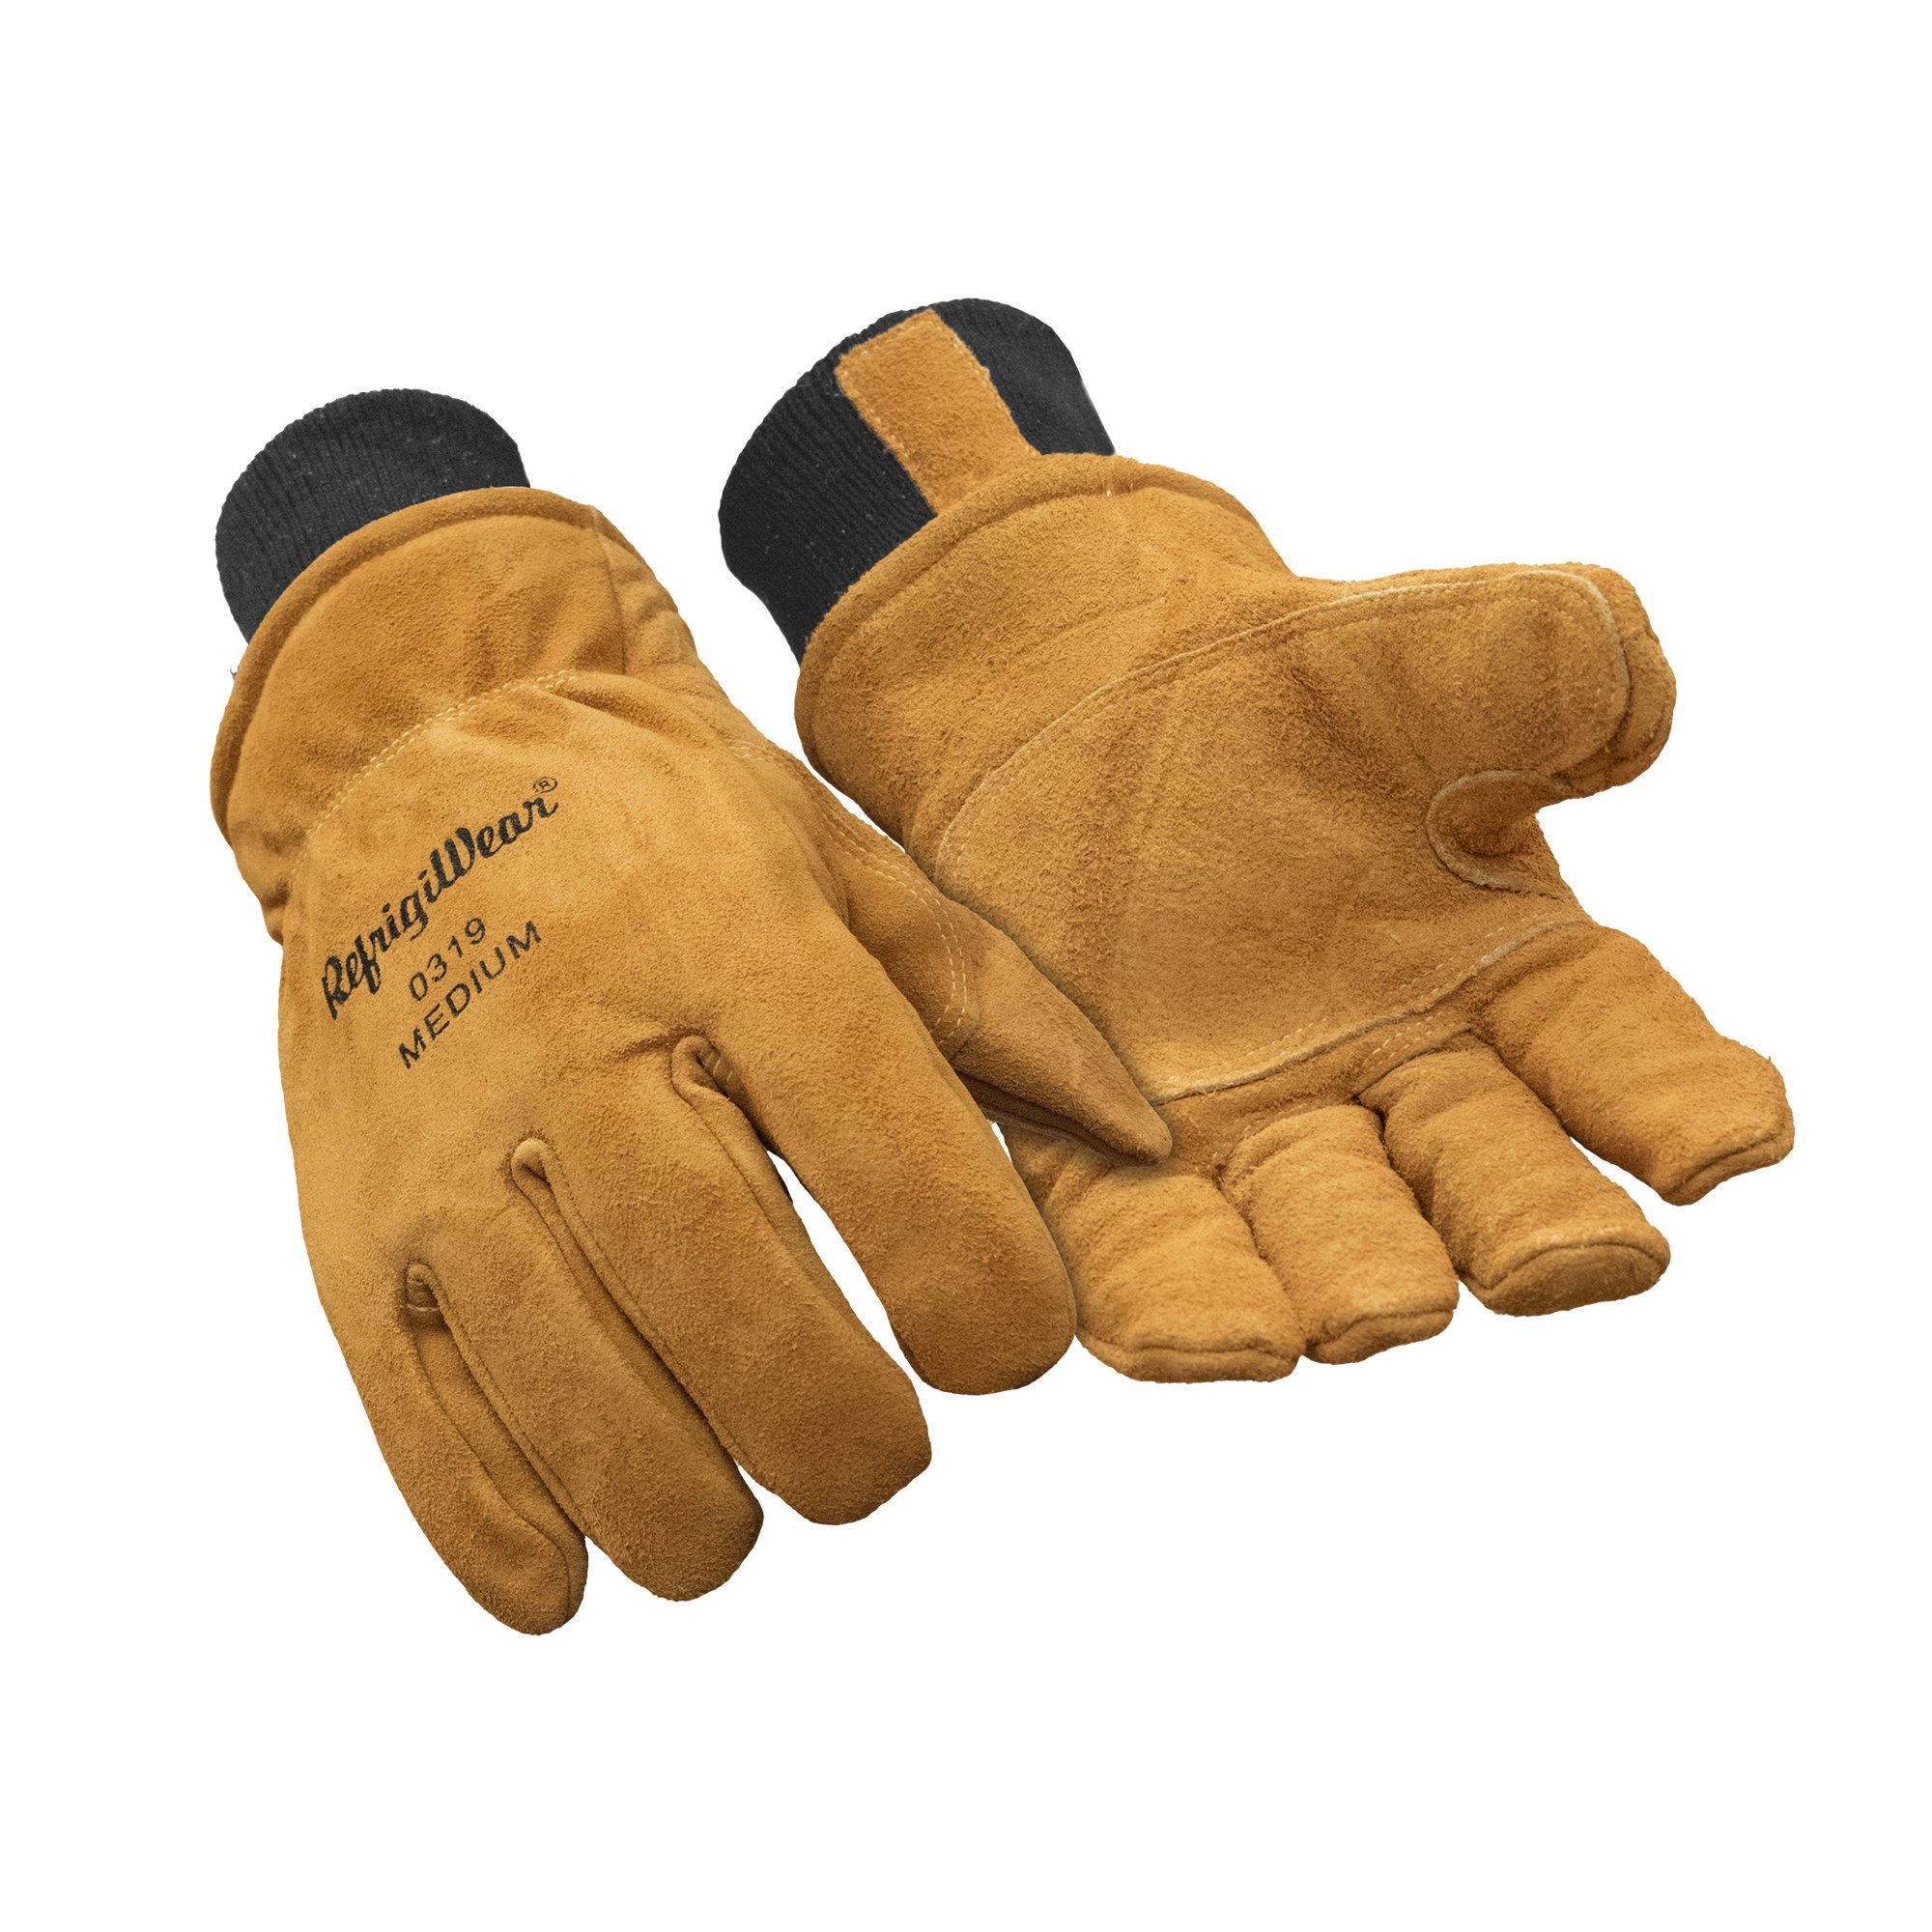 RefrigiWear Warm Fleece Lined Fiberfill Insulated Cowhide Leather Work Gloves (Gold, X-Large)